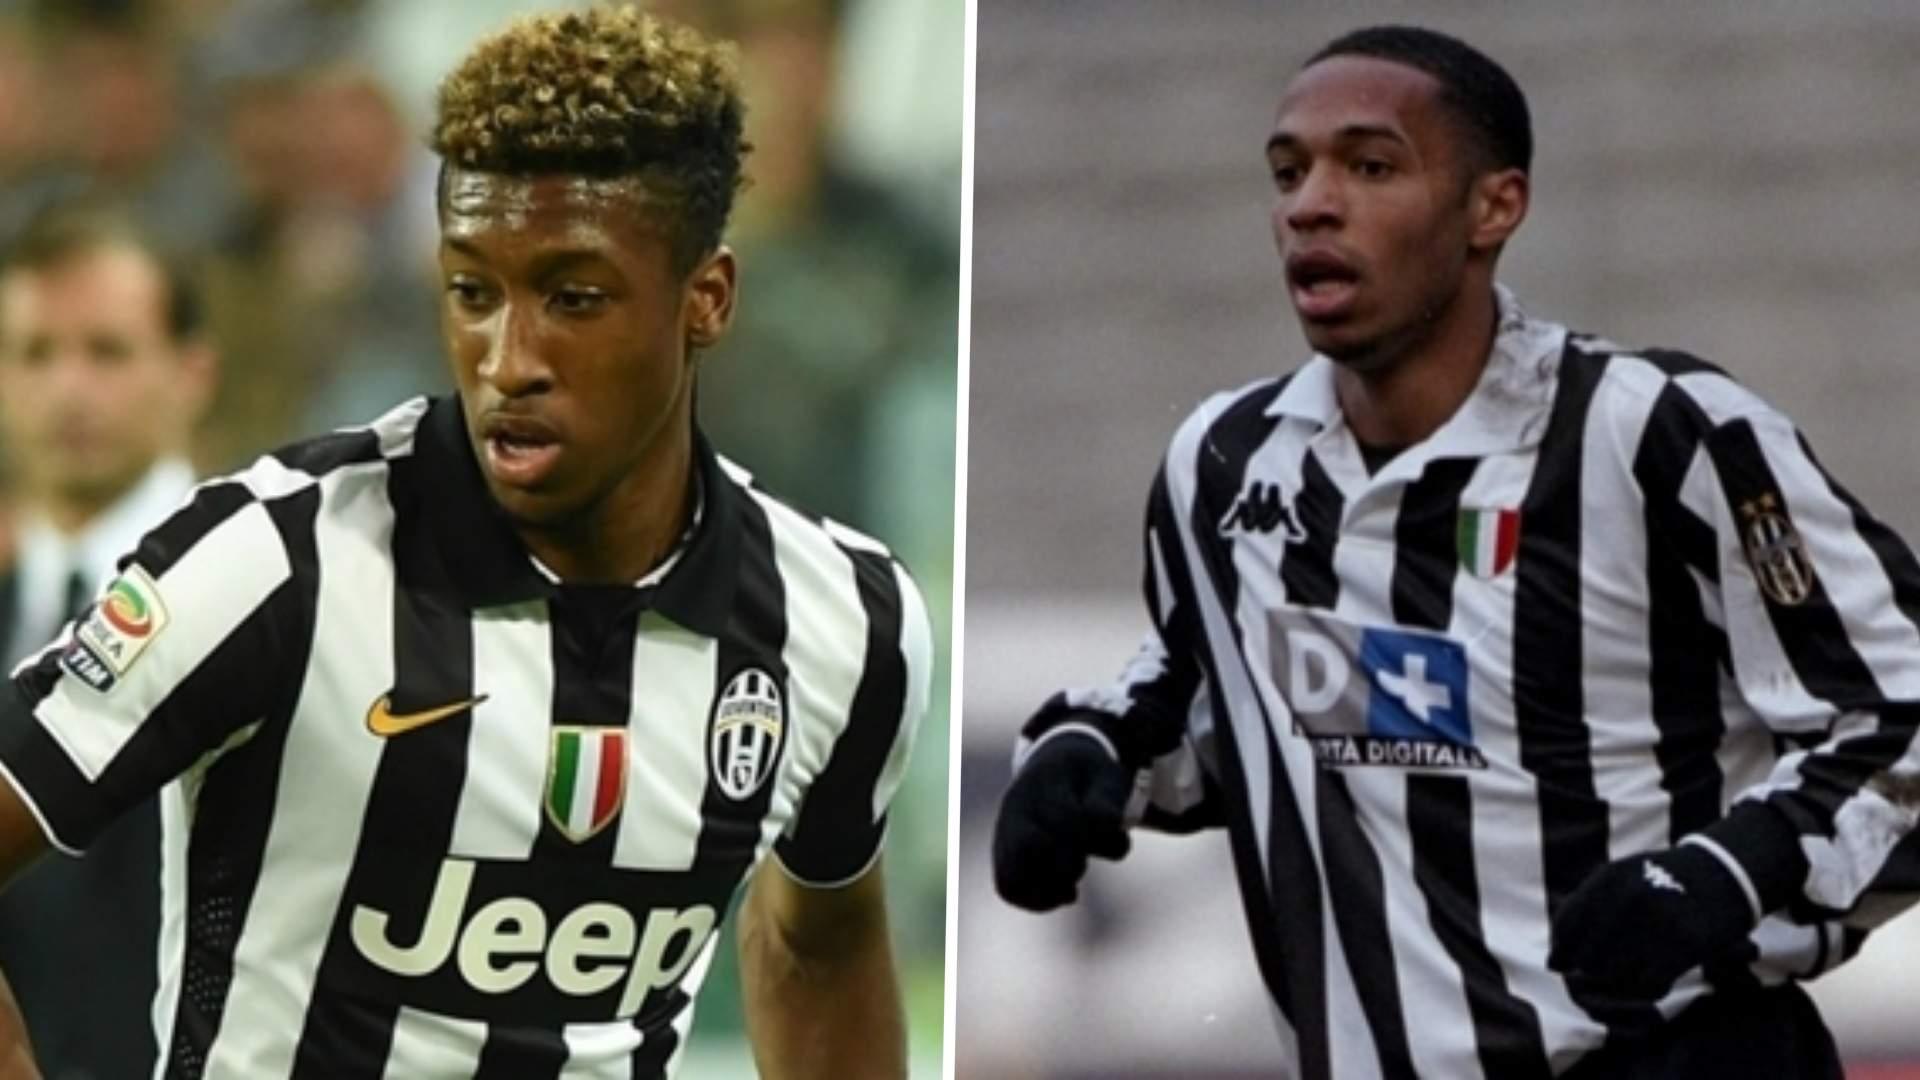 'Coman joins Henry on list of Juventus mistakes' – Capello blasts Bianconeri for parting with top talent